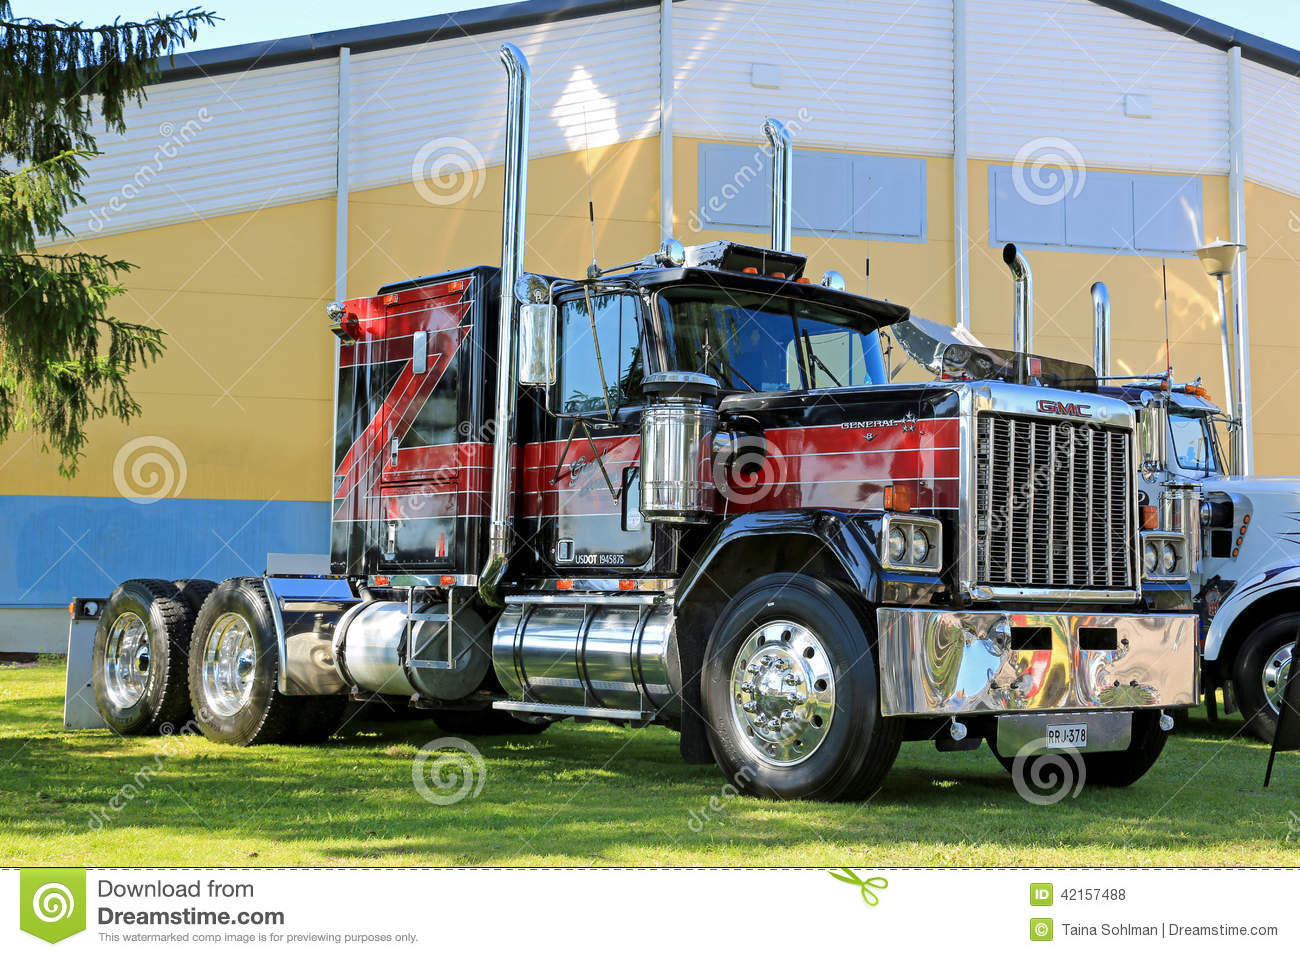 Wtb 81 87 Chevy Gmc Truck W Ls Swap 532584 together with 1987 Toyota SR5 Trucks 4WD Xtracab 4 Spd Auto ECT Sierra Vista AZ furthermore Page1 together with Renault Megane Gt 3 Doors 2010 together with 2018 Chevy Silverado 2500hd Duramax Review And Price. on gmc seats 12